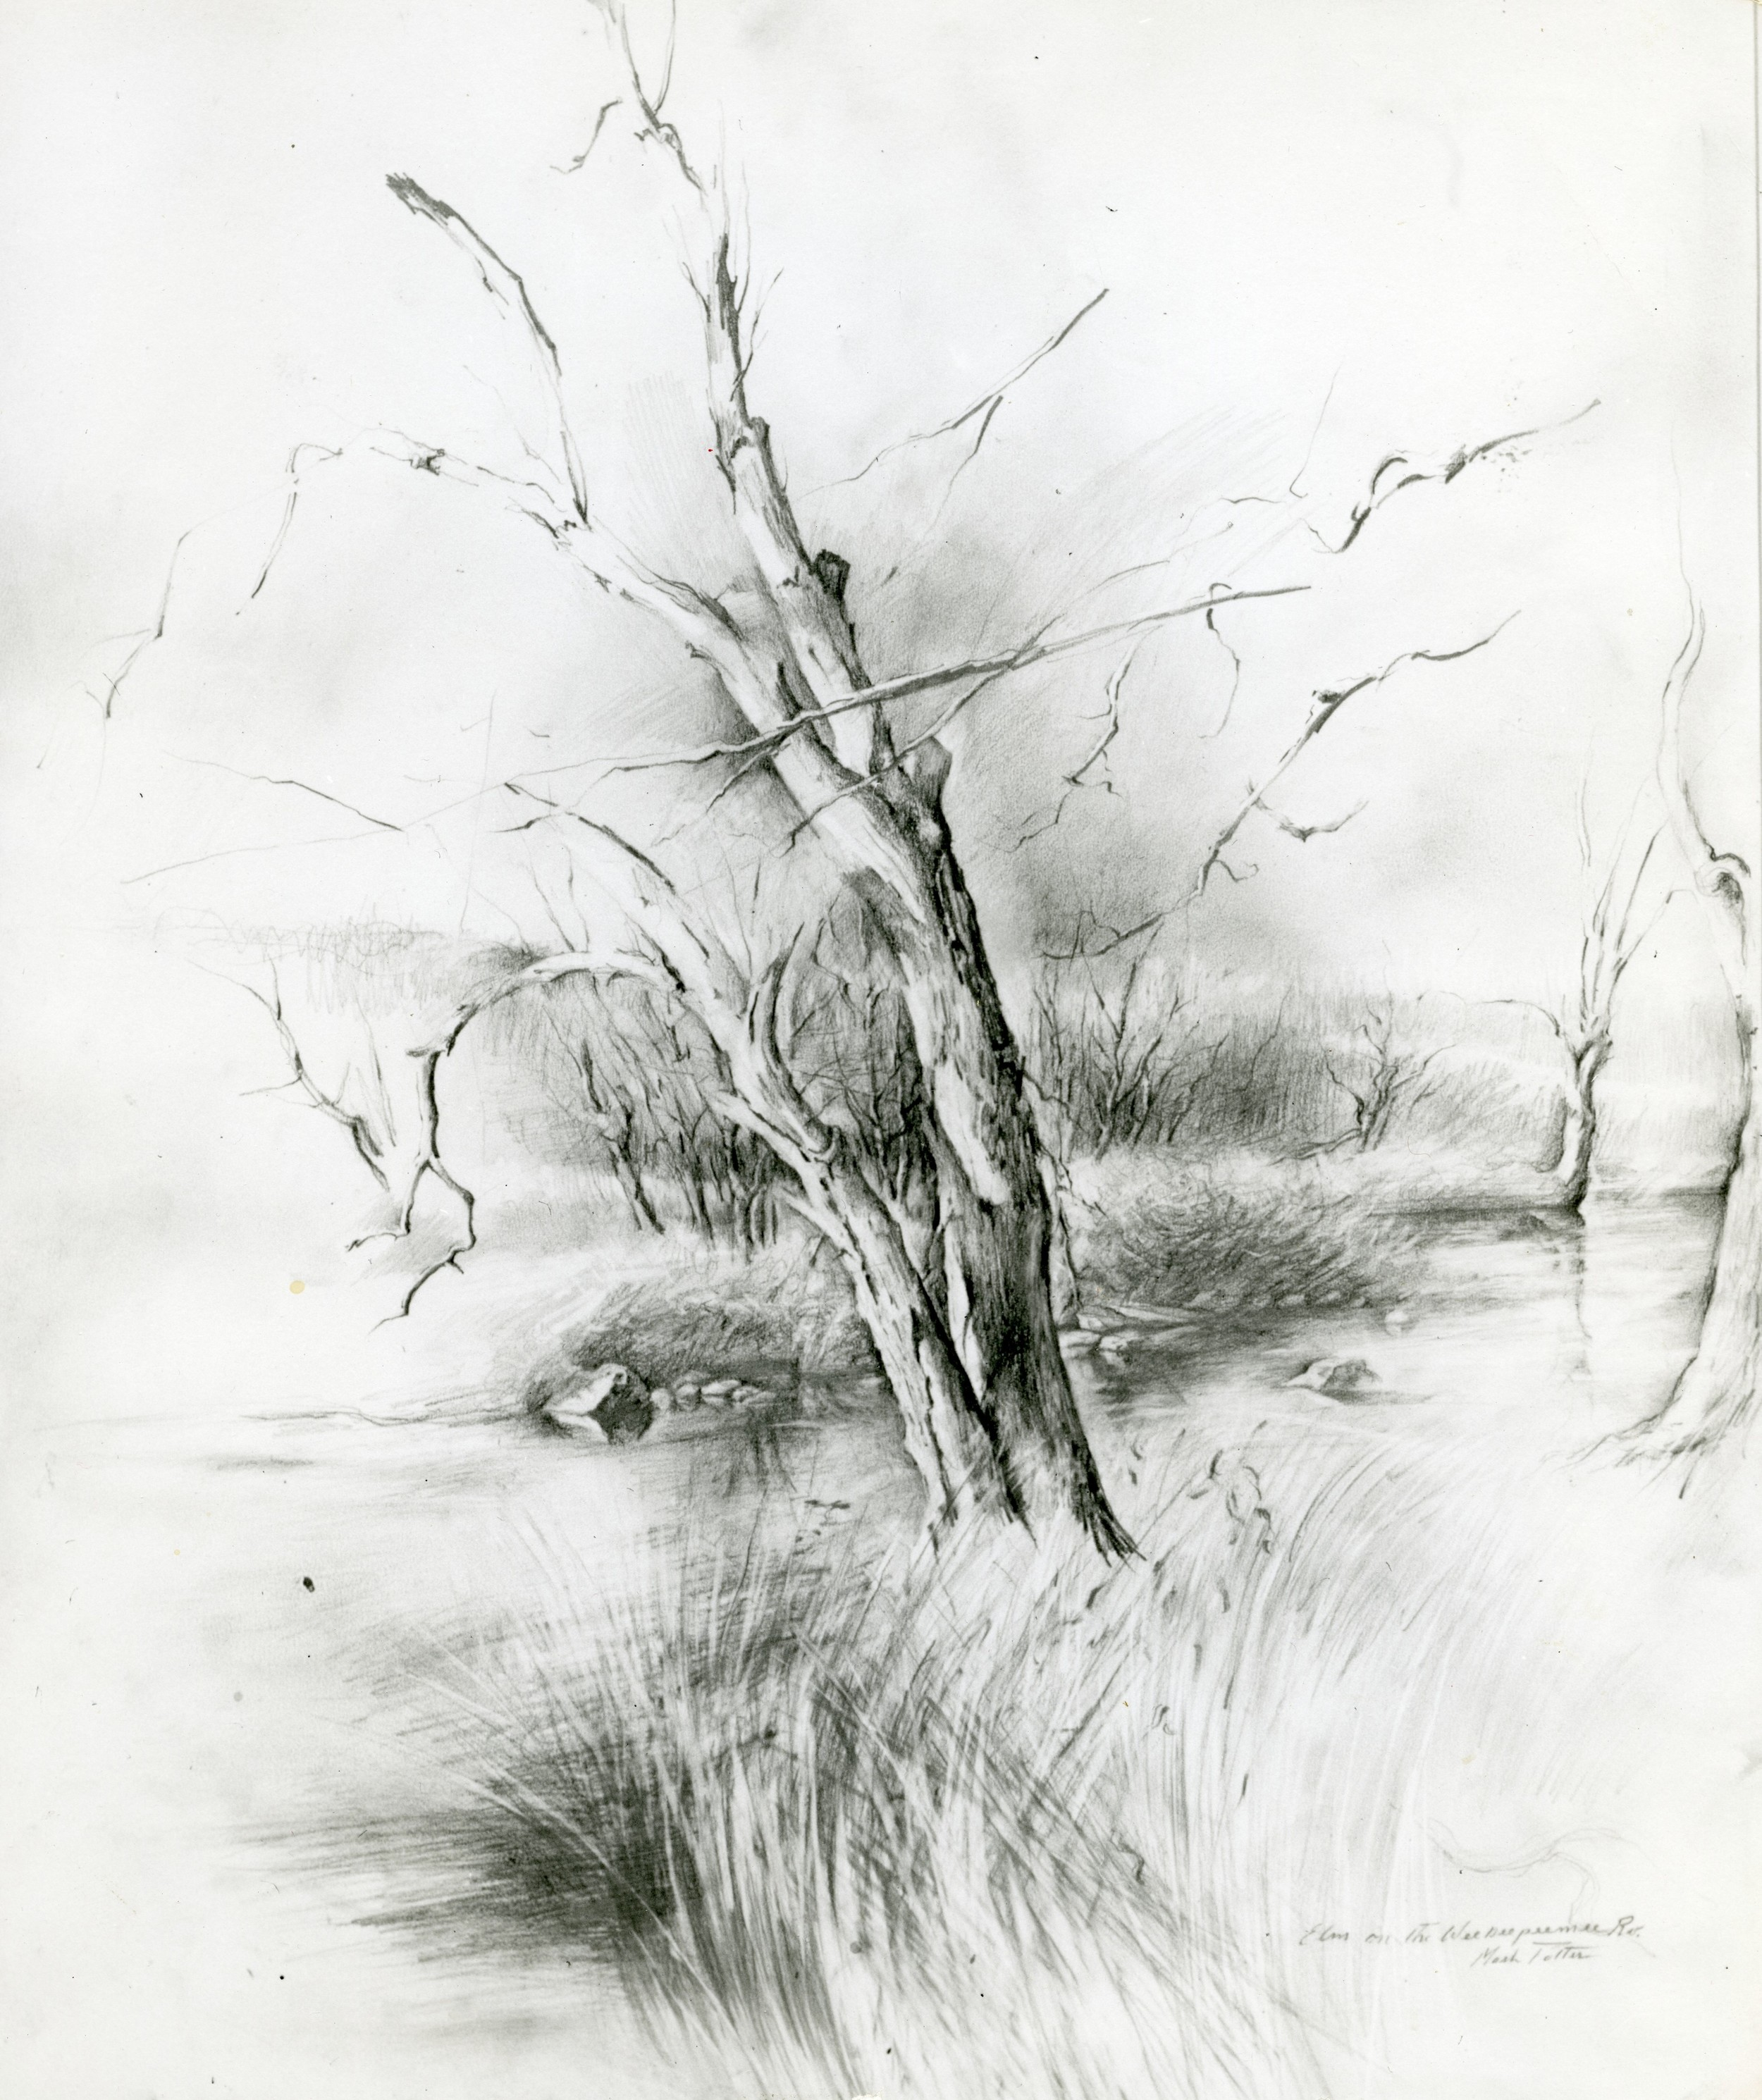 Elm on the Weekeepeemee River.     1972, pencil on paper. 28.1 x 22.4 inches.